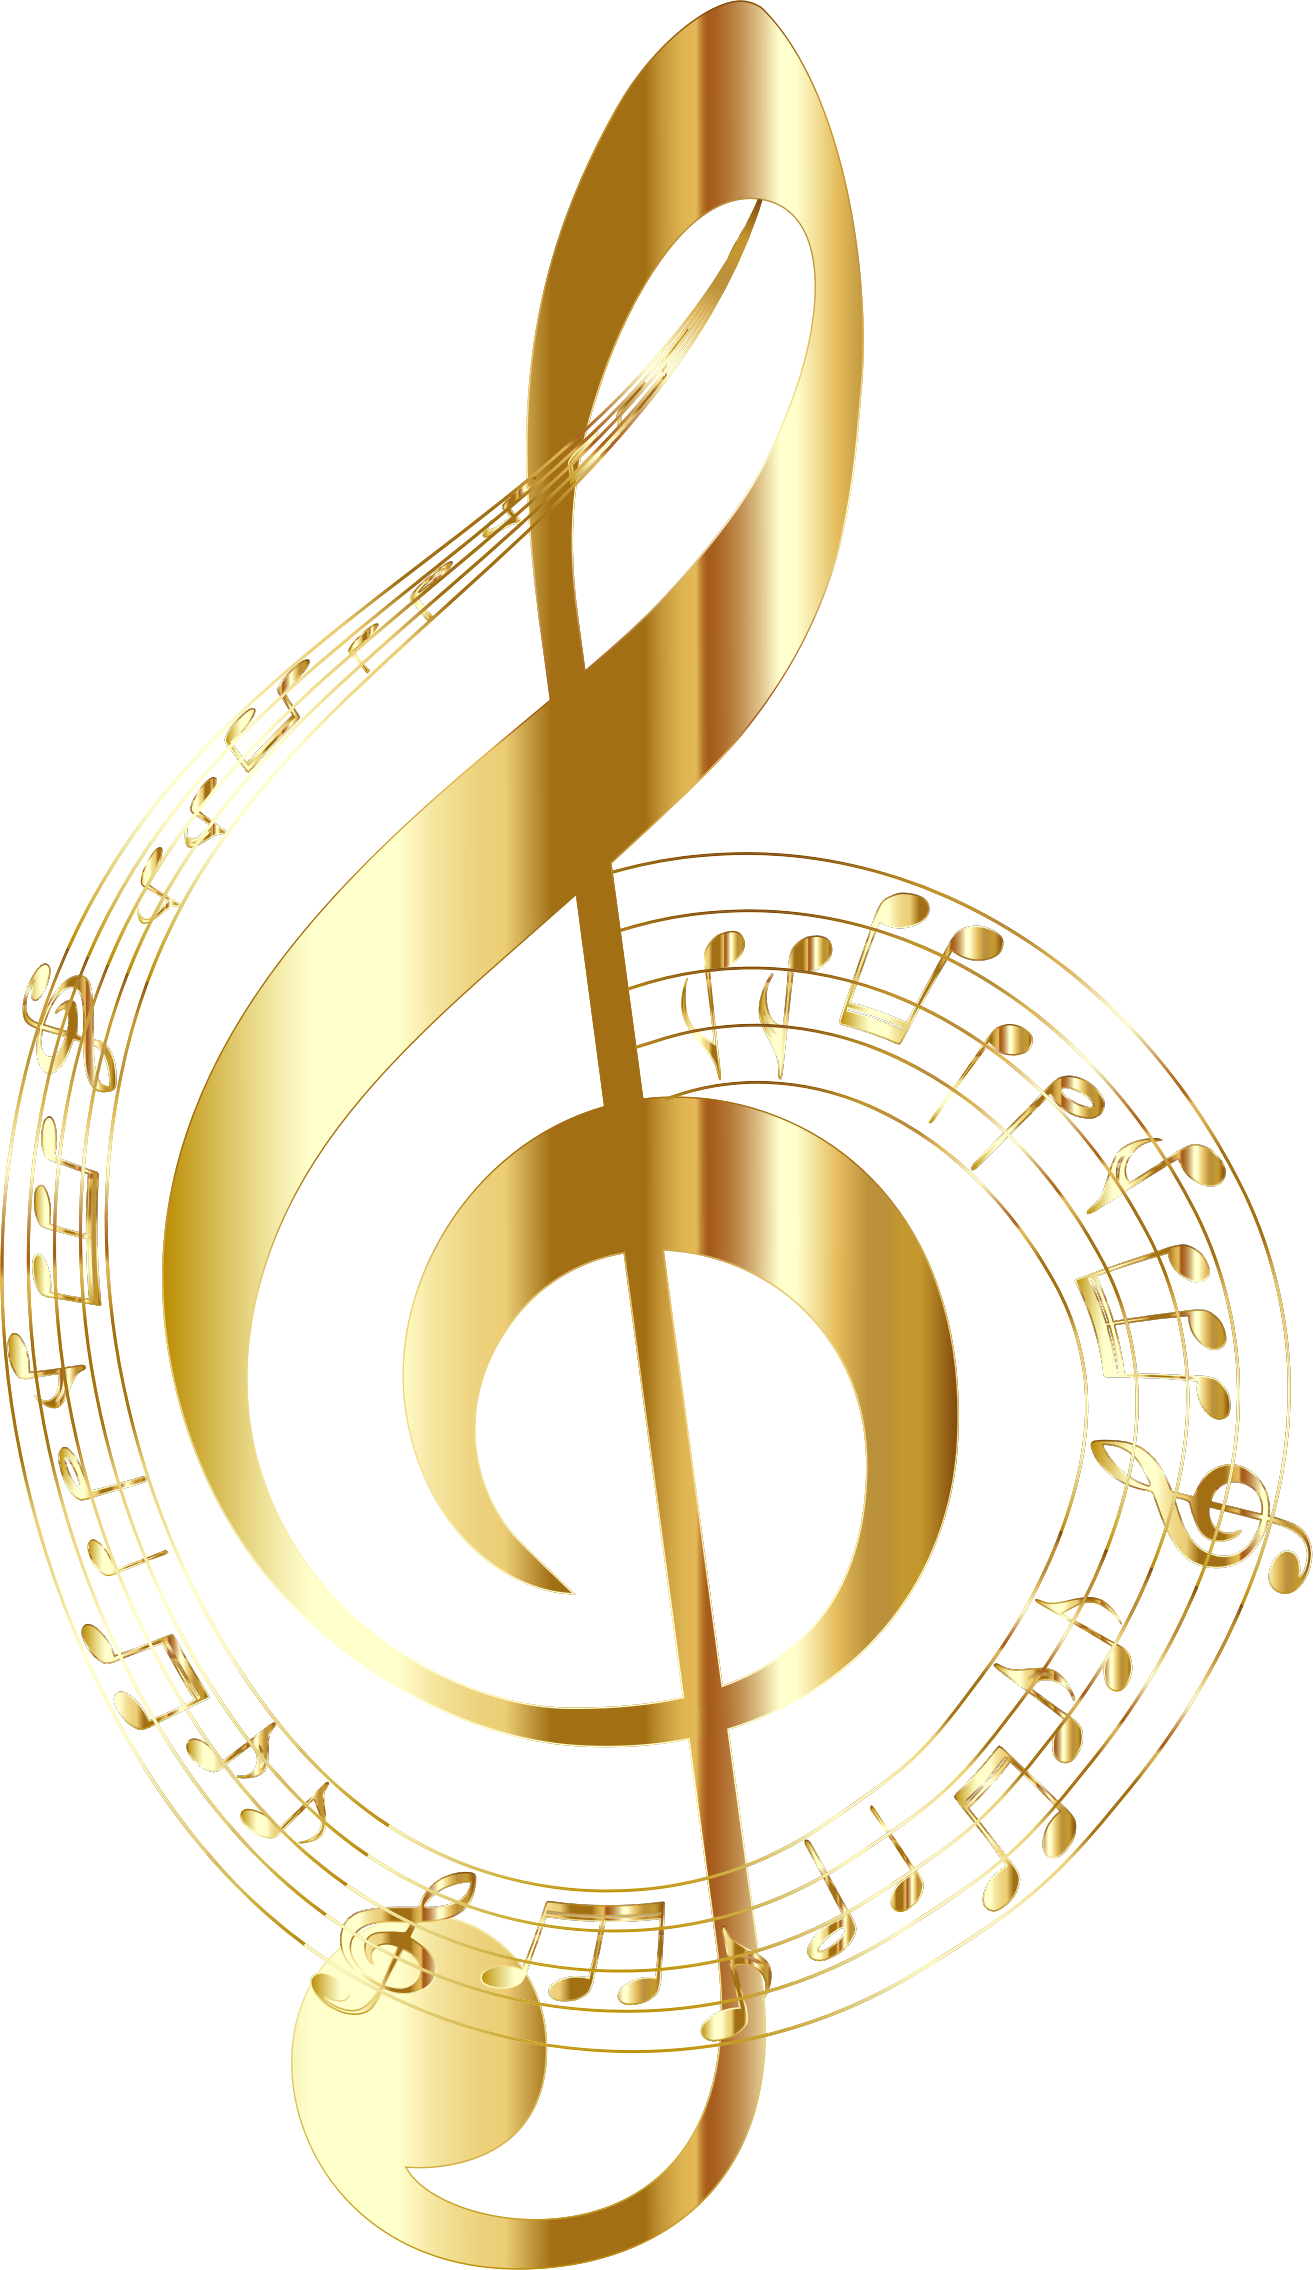 Gold Musical Notes Typography No Background by GDJ